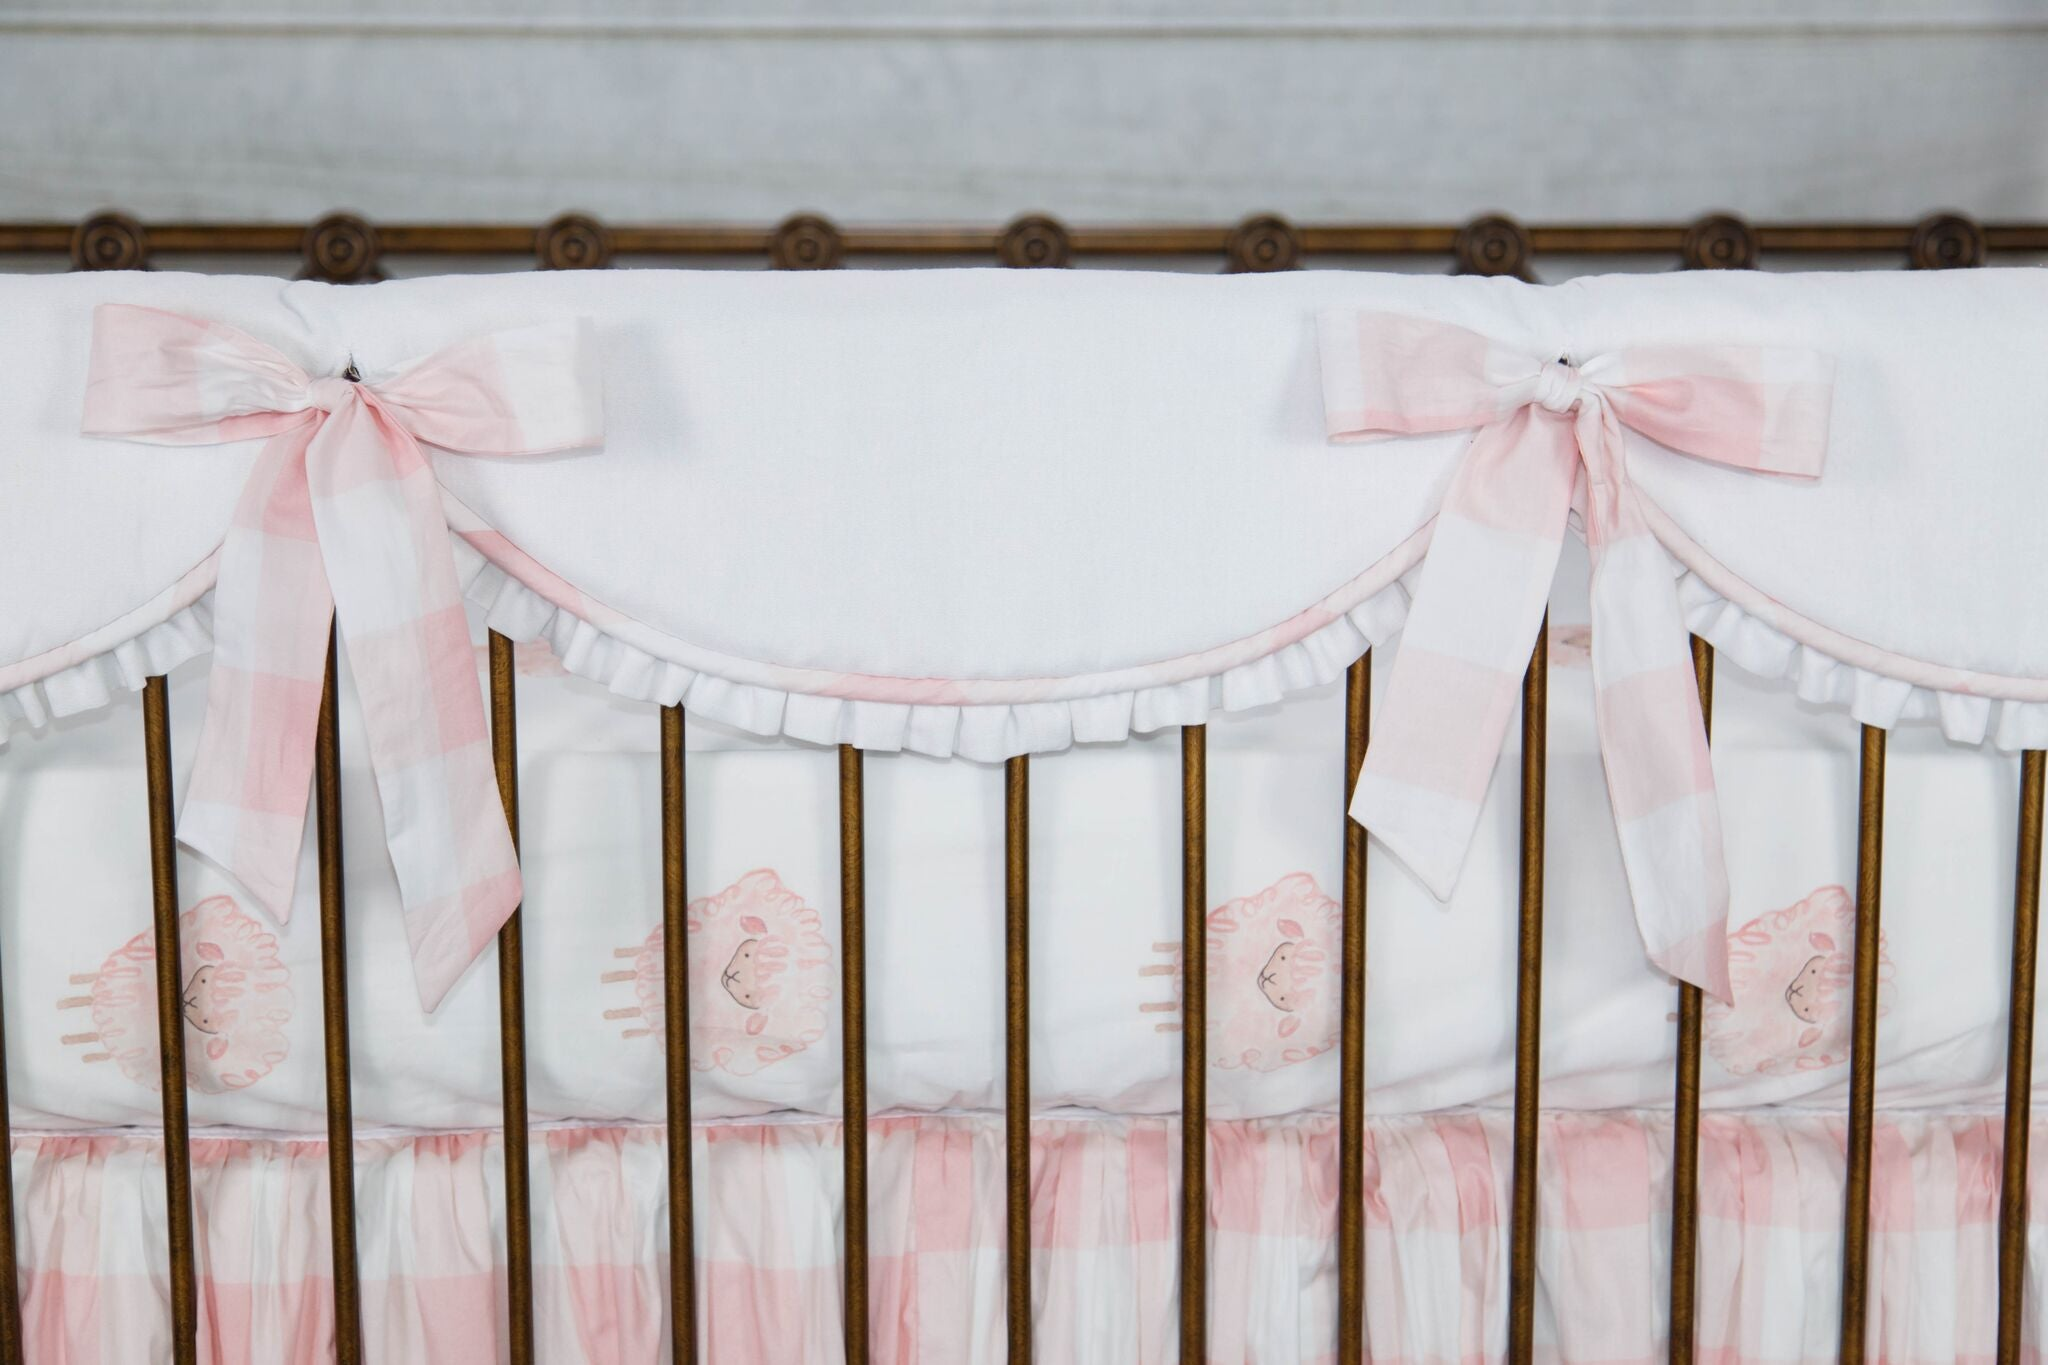 Fireflies & Fairytales Bedding and Linens